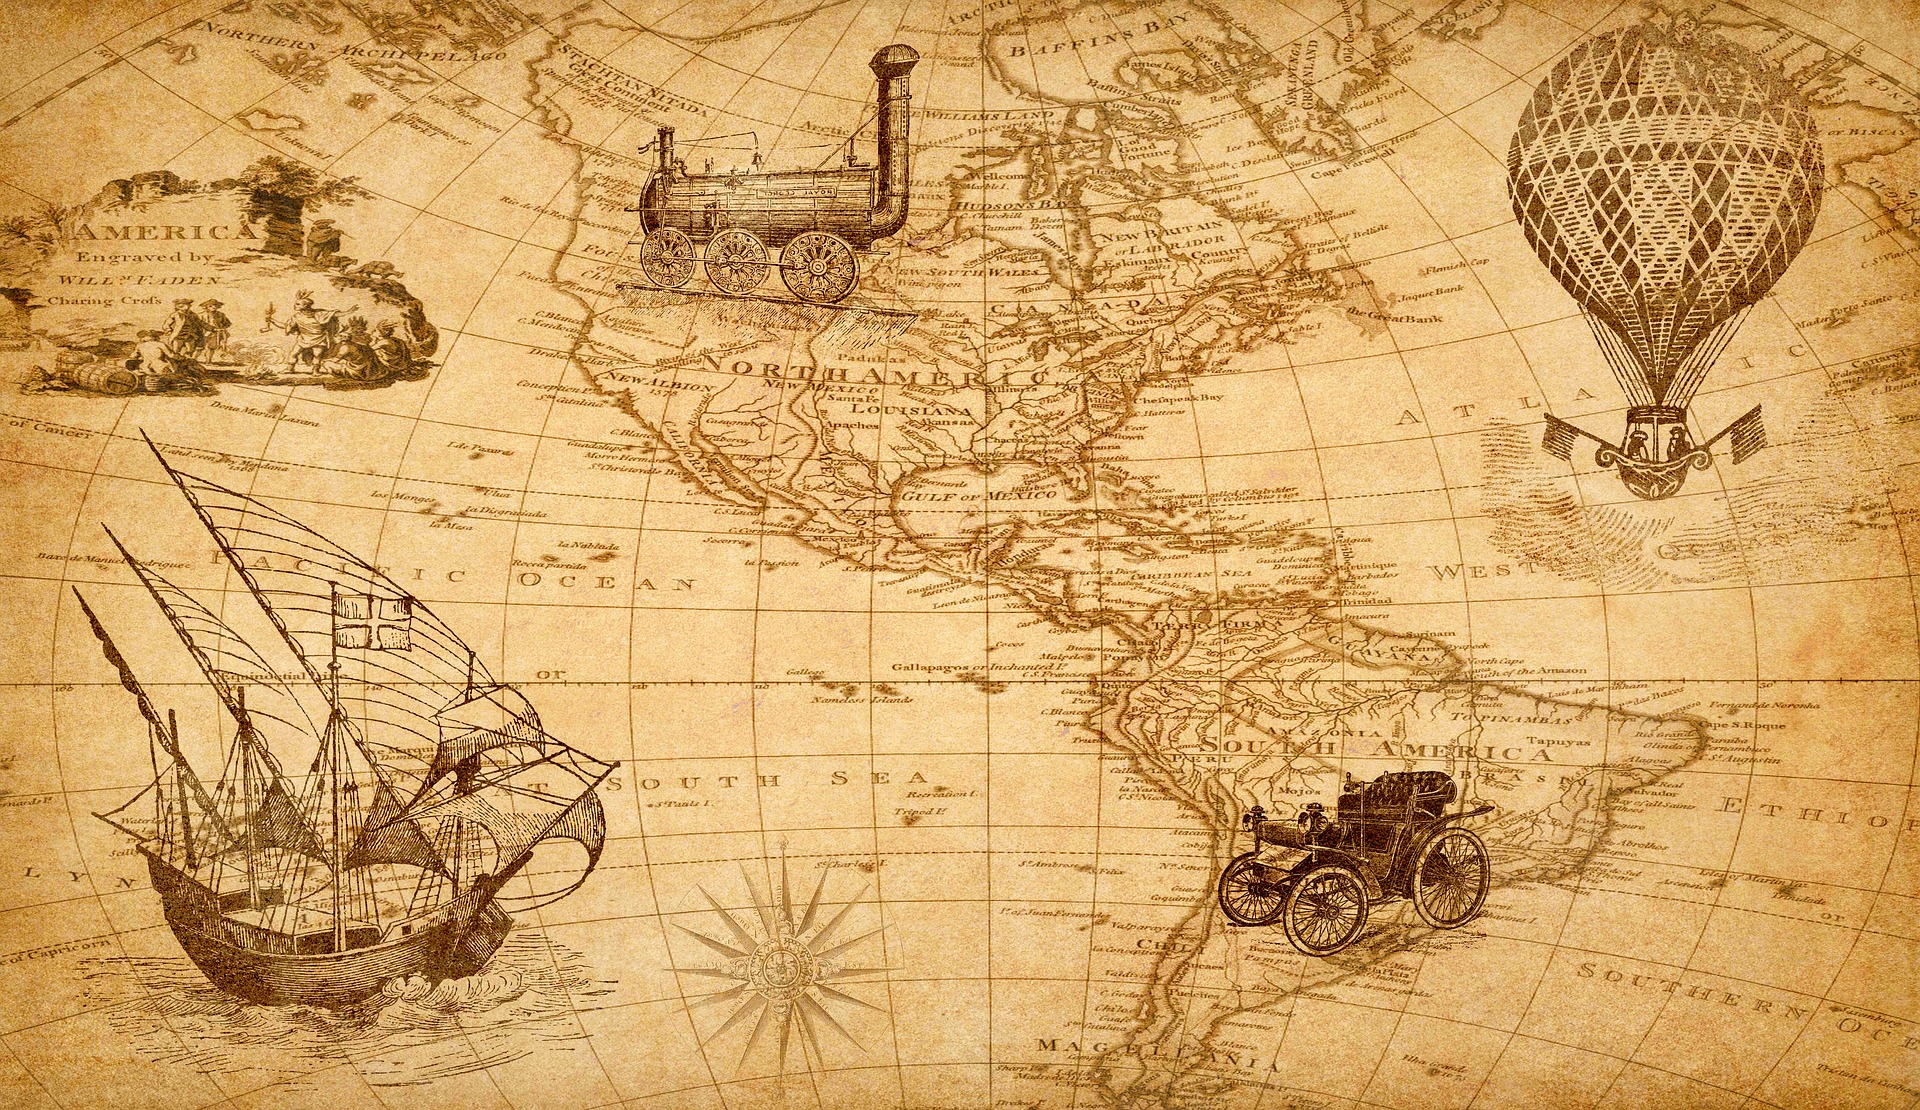 a world map, only showing the America's, with drawings of a boat, hot air ballon, train and car.